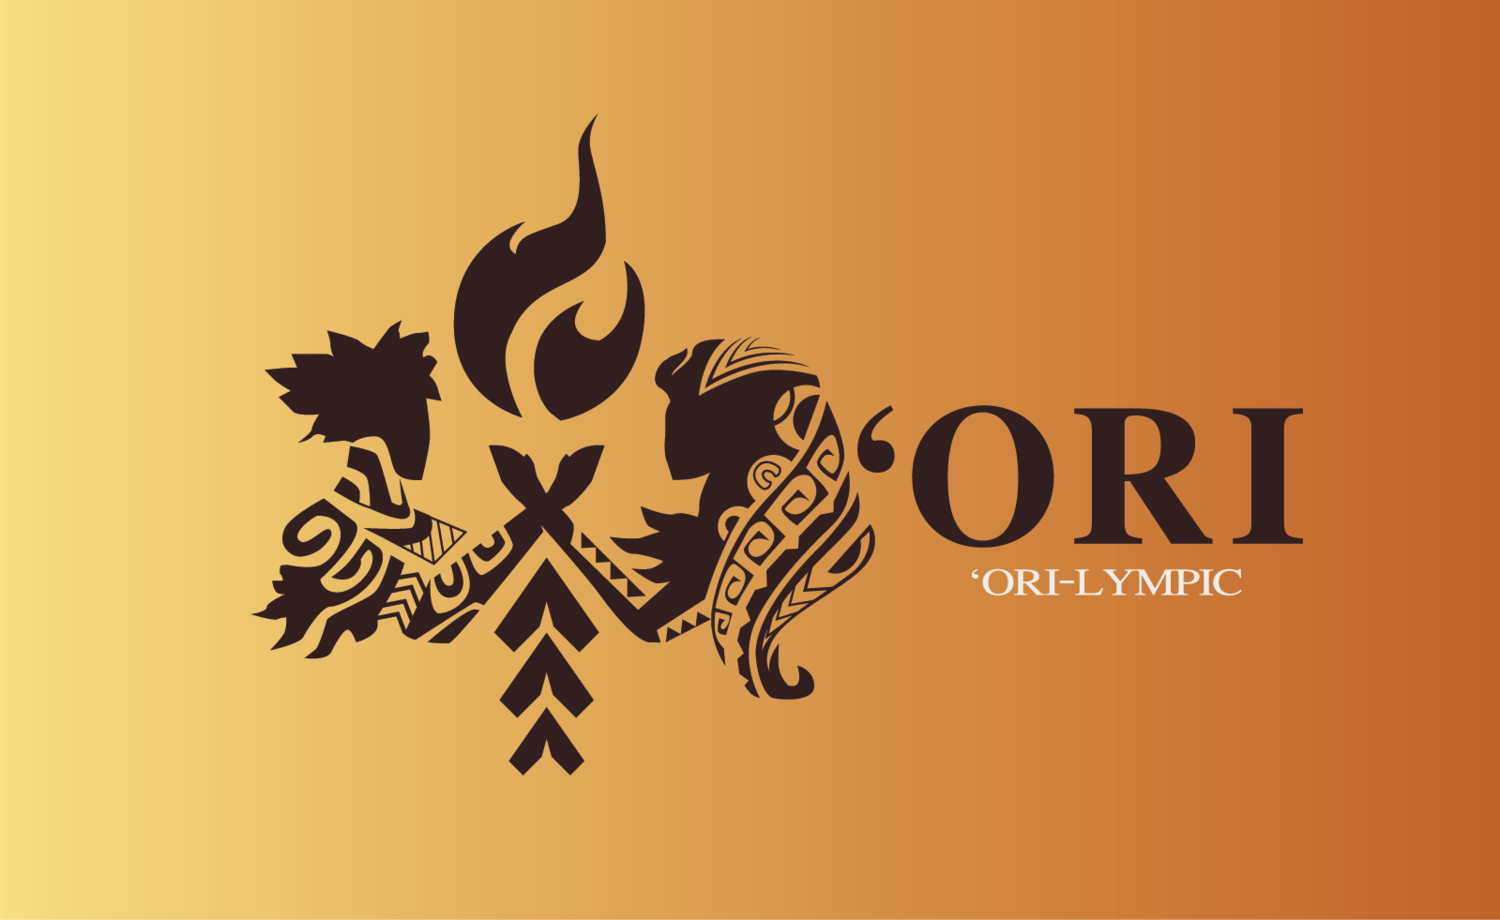 'ORI 'ORI-LYMPIC 2021 'APARIMA EDITION ´ĀREAREA 'APARIMA CATEGORY